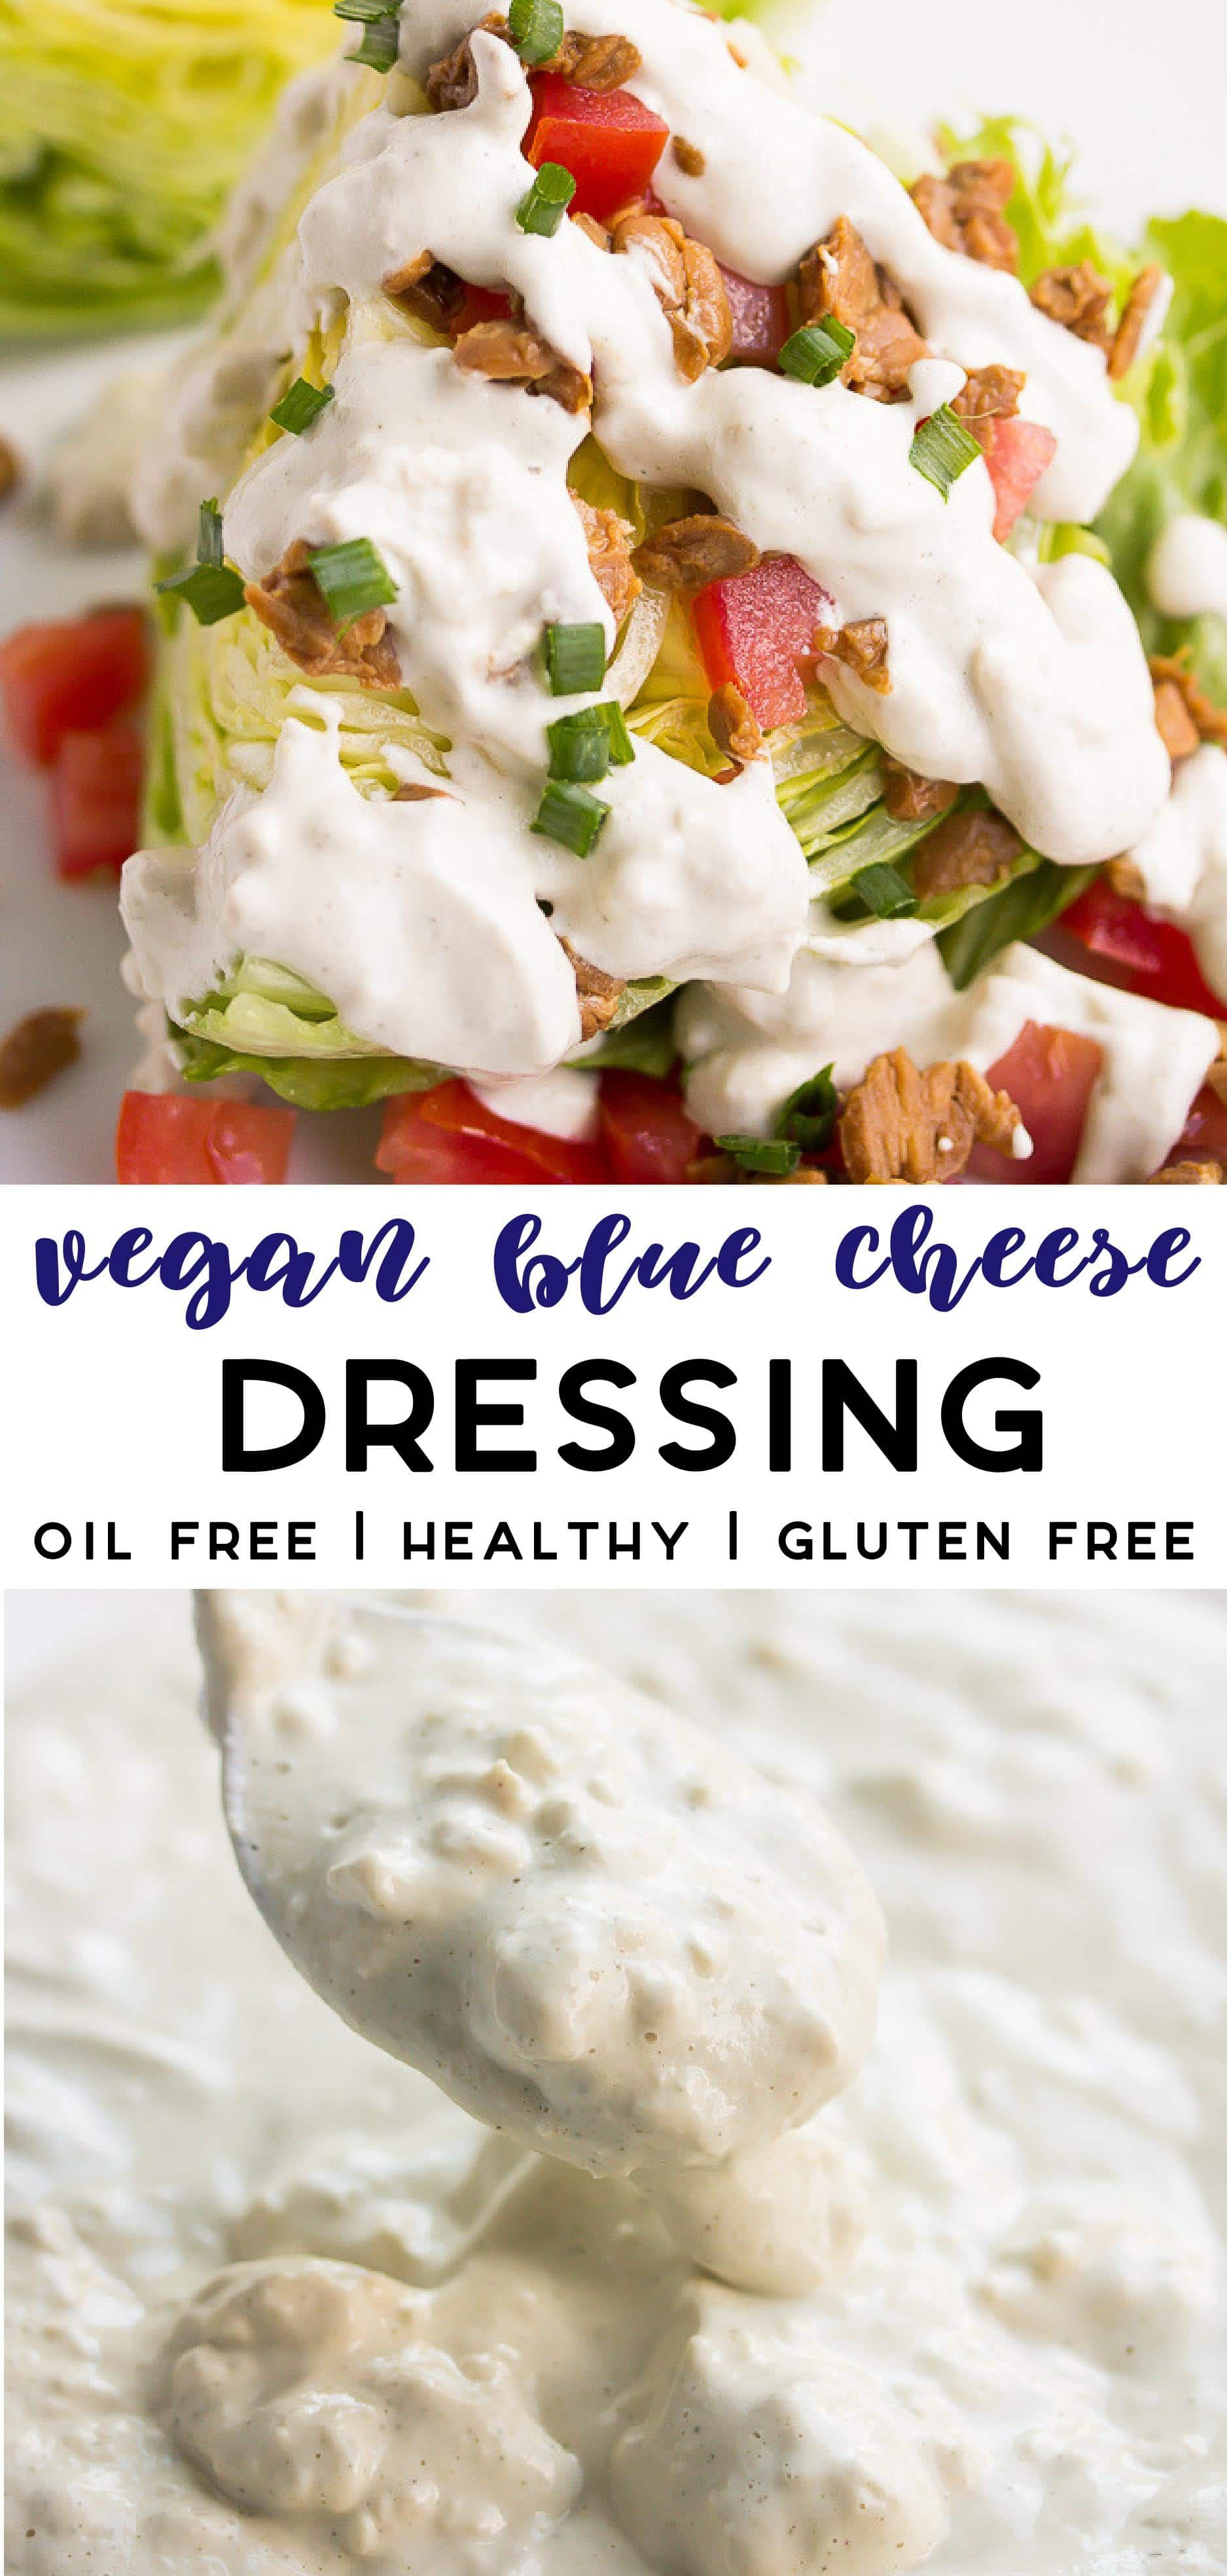 Healthy Vegan Blue Cheese Dressing Or Dip That Is Creamy With Crumbles Perfect For Wedge Vegan Blue Cheese Dressing Whole Food Recipes Blue Cheese Dressing